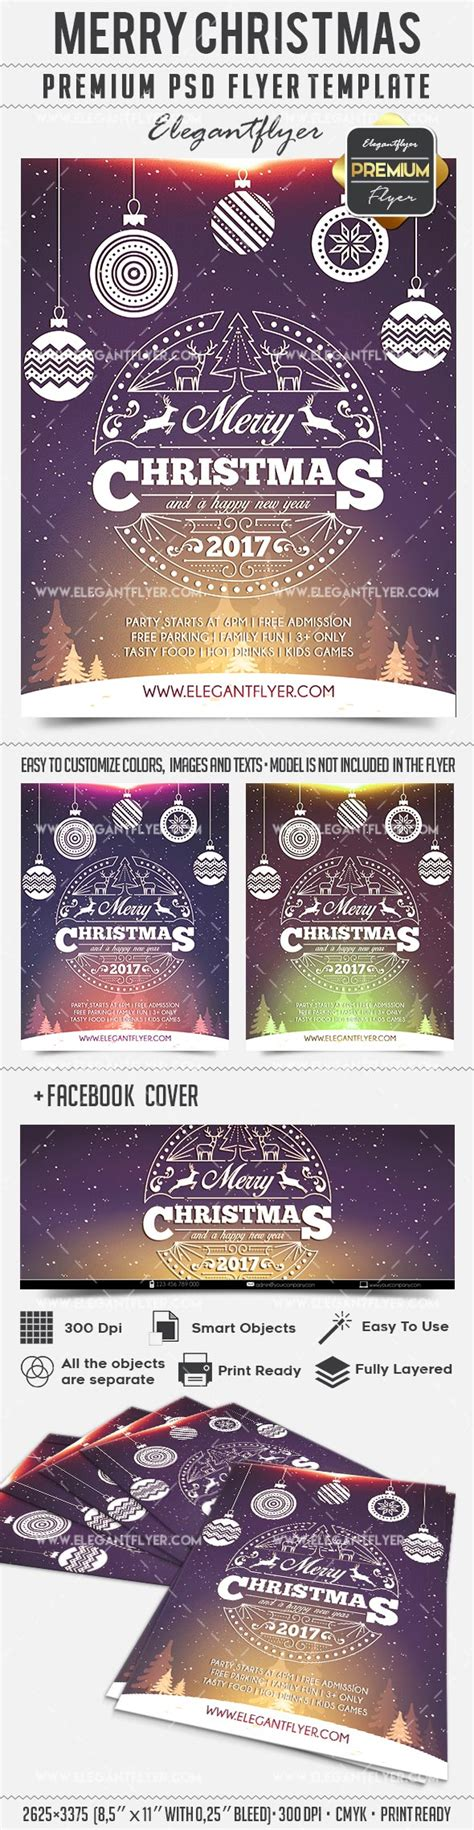 Poster Merry Christmas Psd Template By Elegantflyer Merry Flyer Template Free